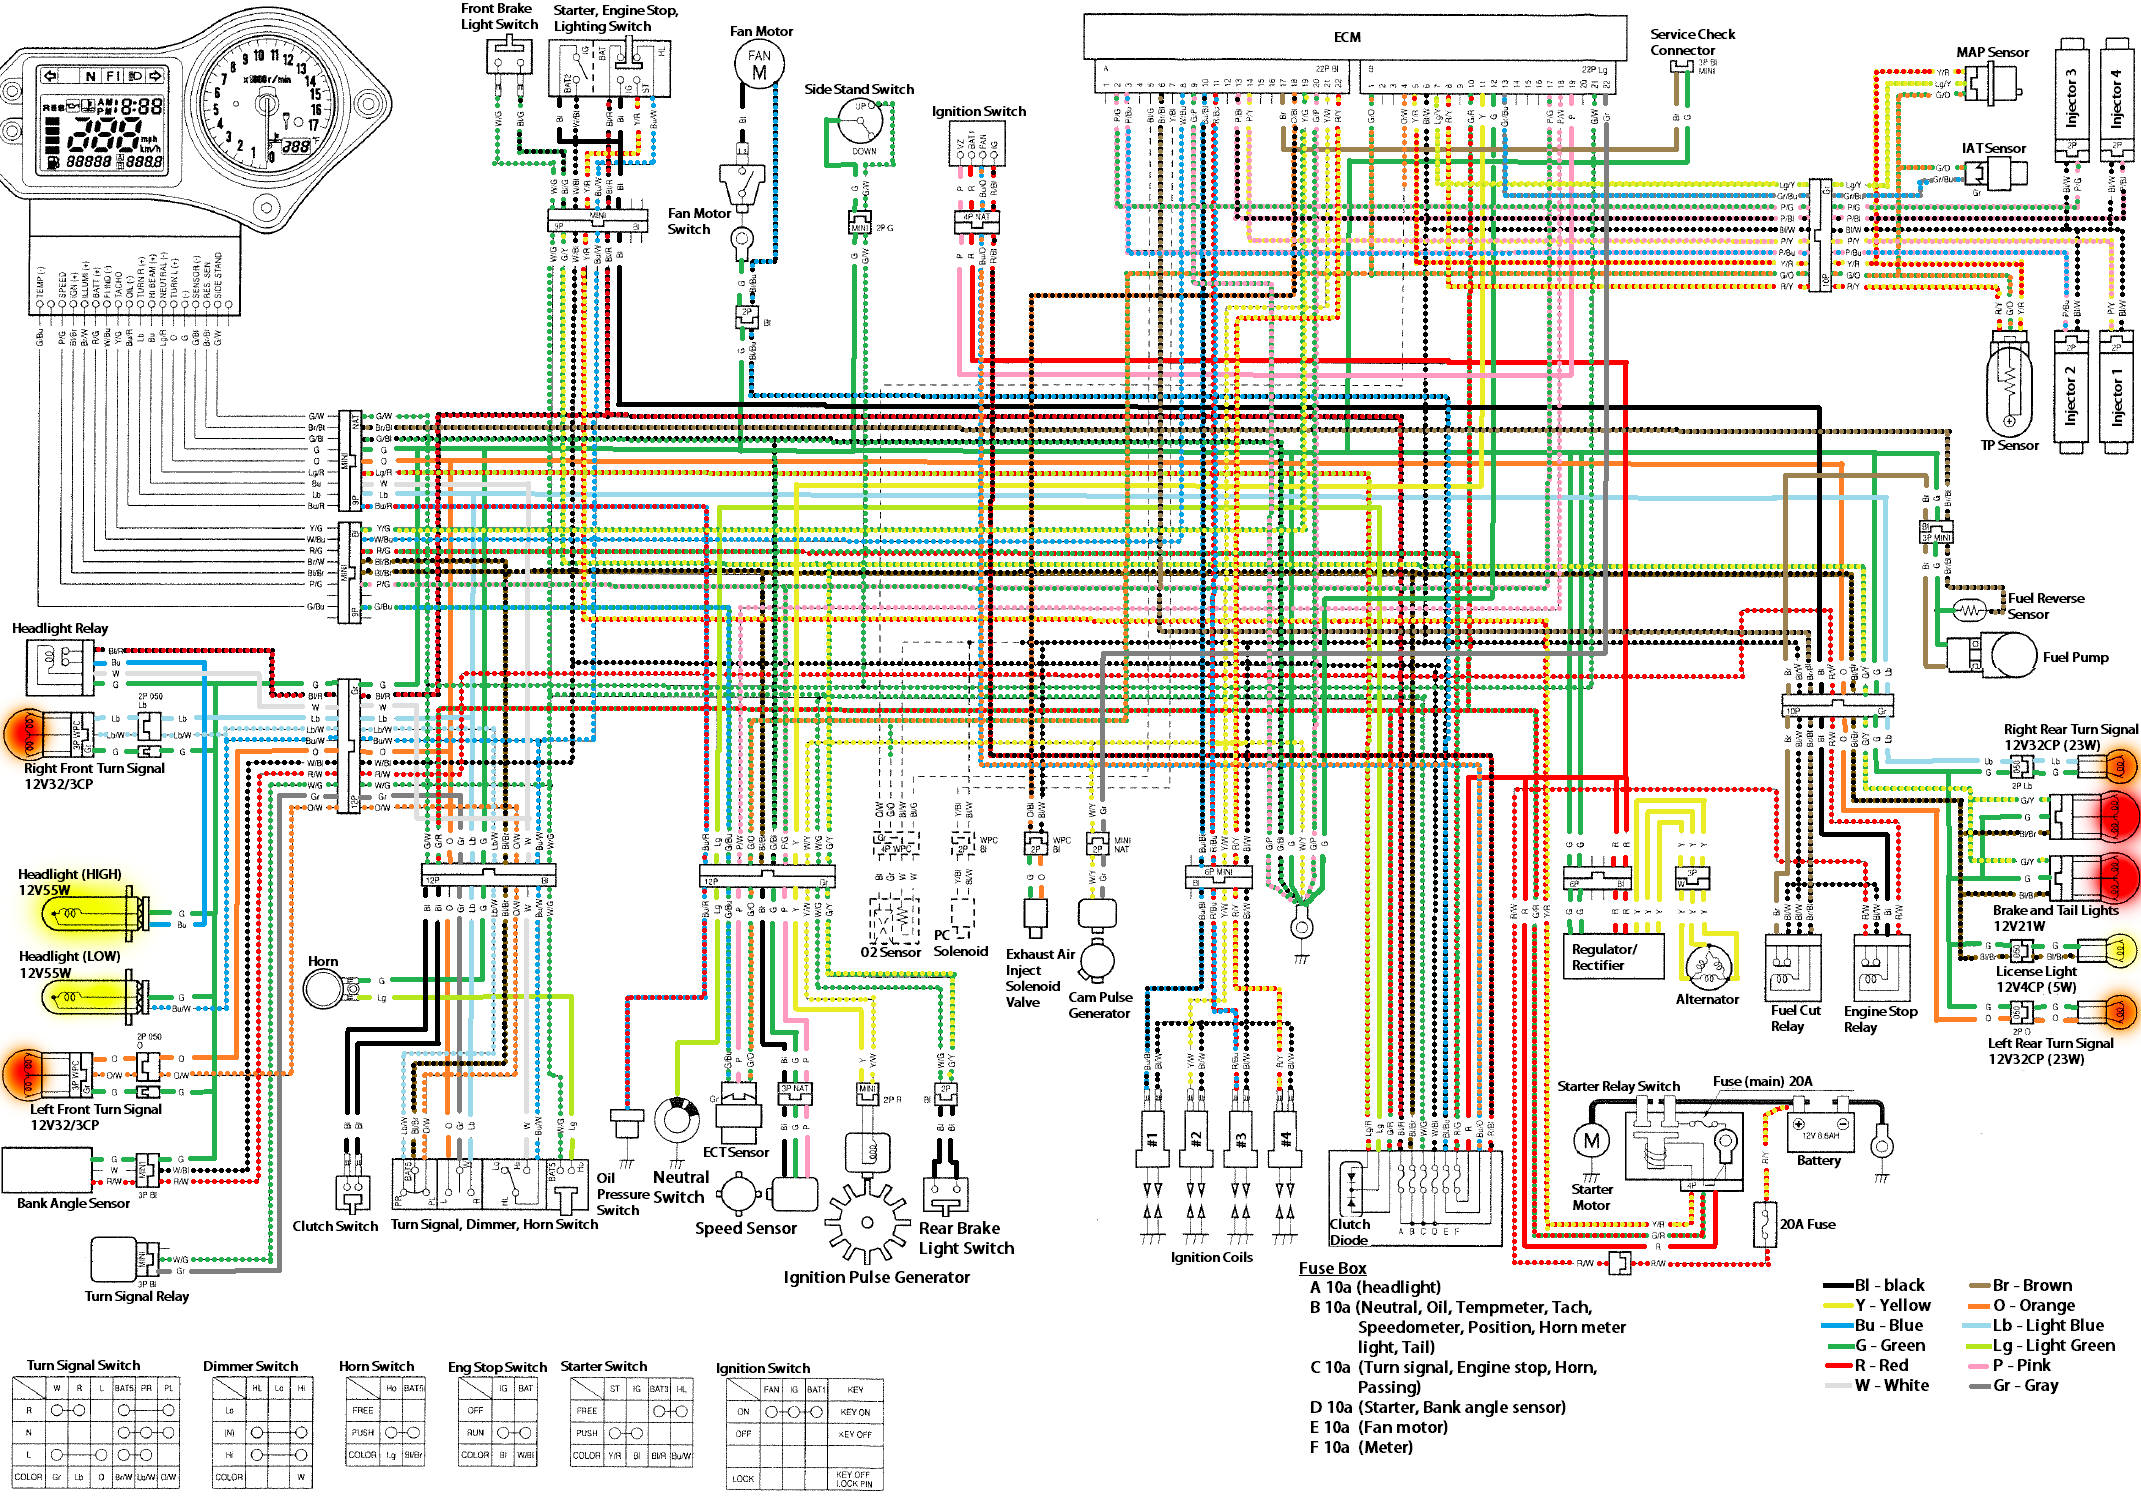 95 Honda Accord Wiring Harness Cbr900rr Diagram Not Lossing Todays Rh 15 4 10 1813weddingbarn Com 1995